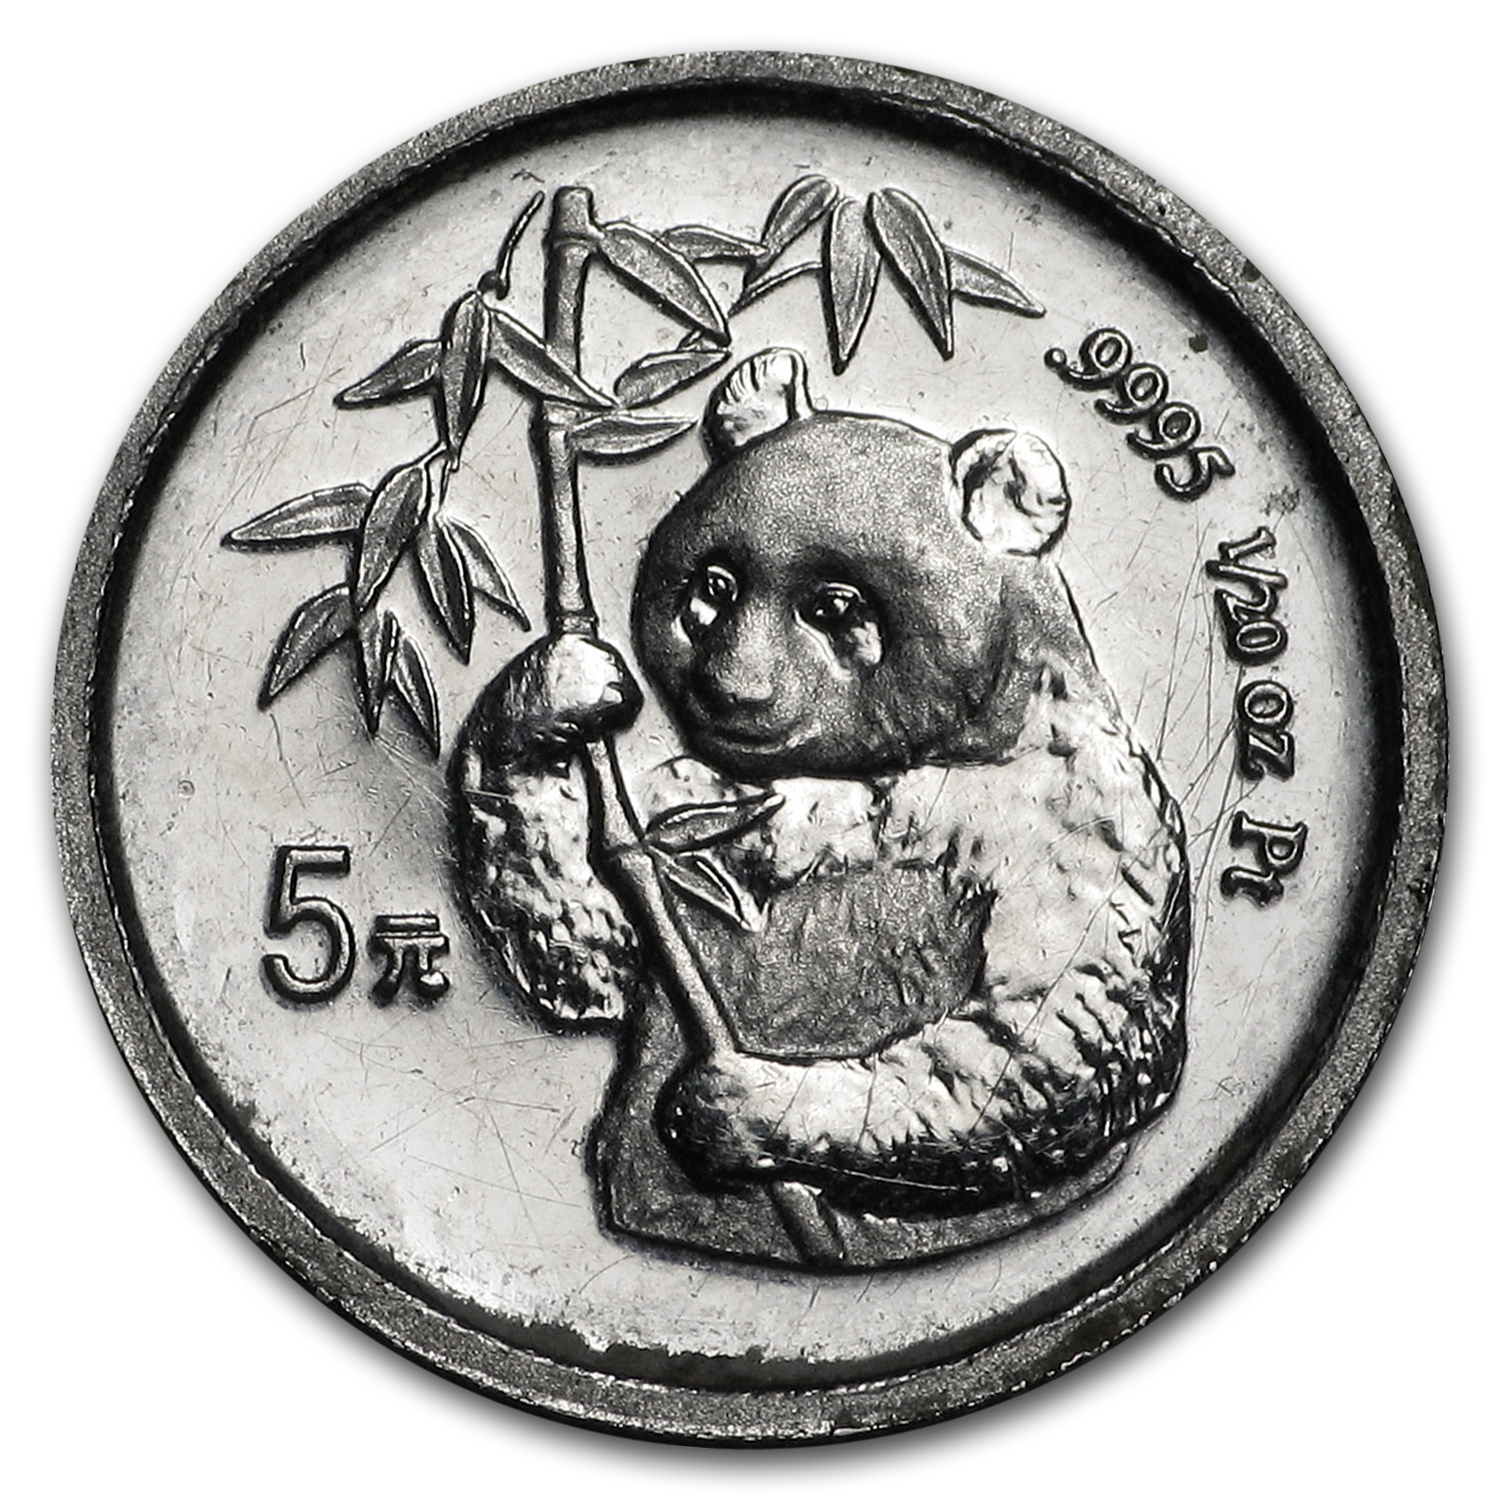 1995 China 1/20 oz Platinum Panda BU (Out of Plastic)